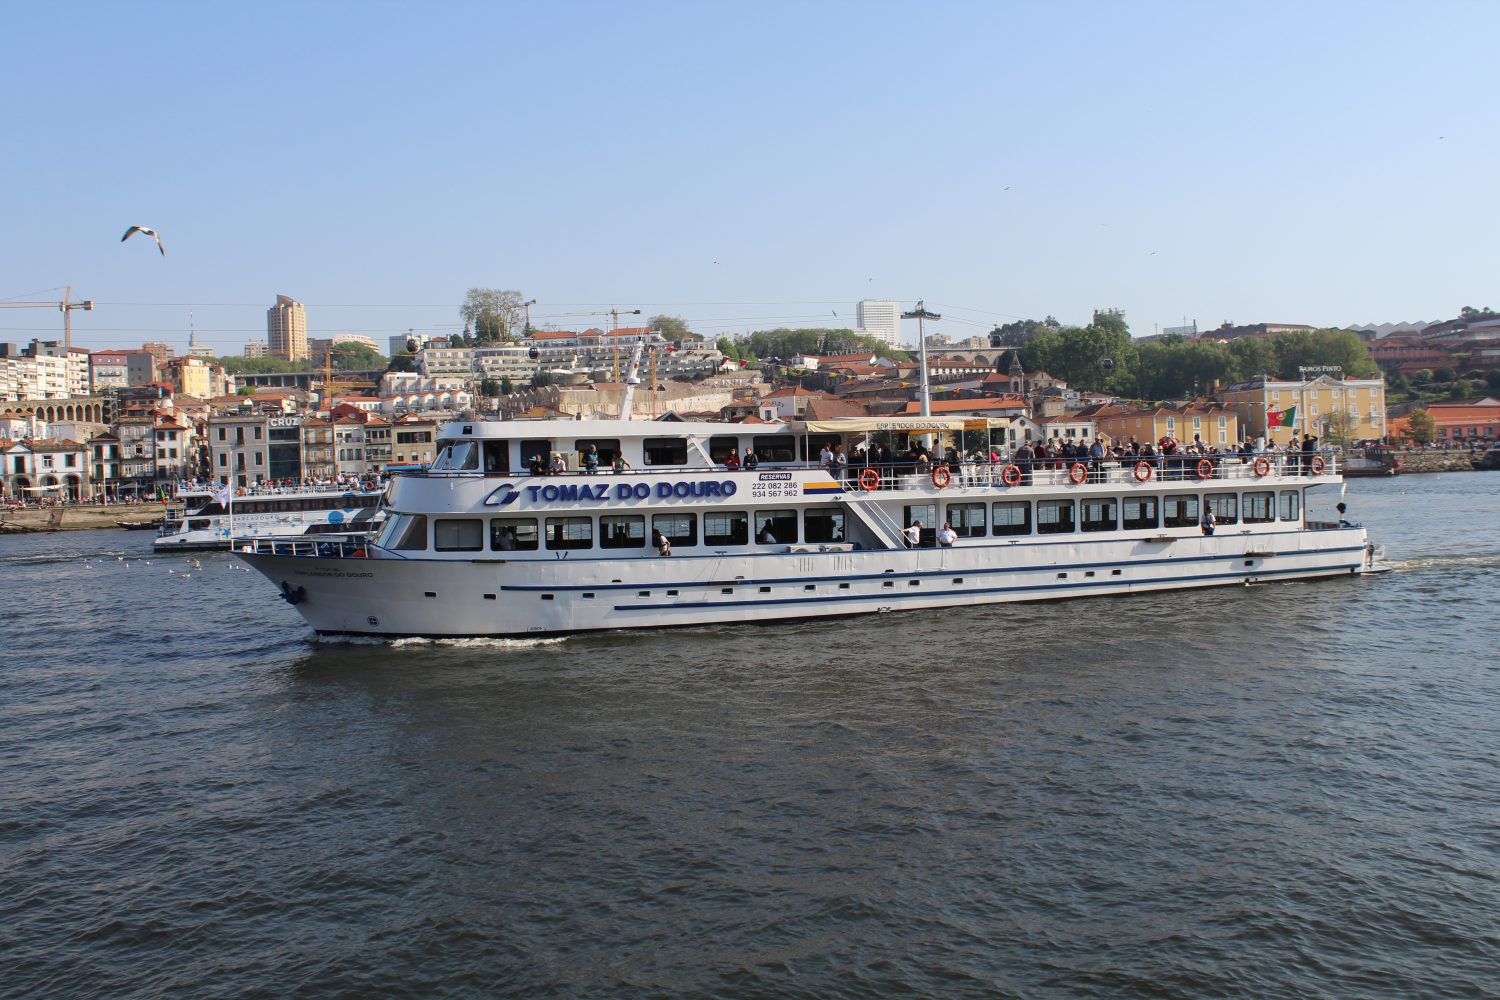 Boat douro cruise with view over Vila Nova de Gaia